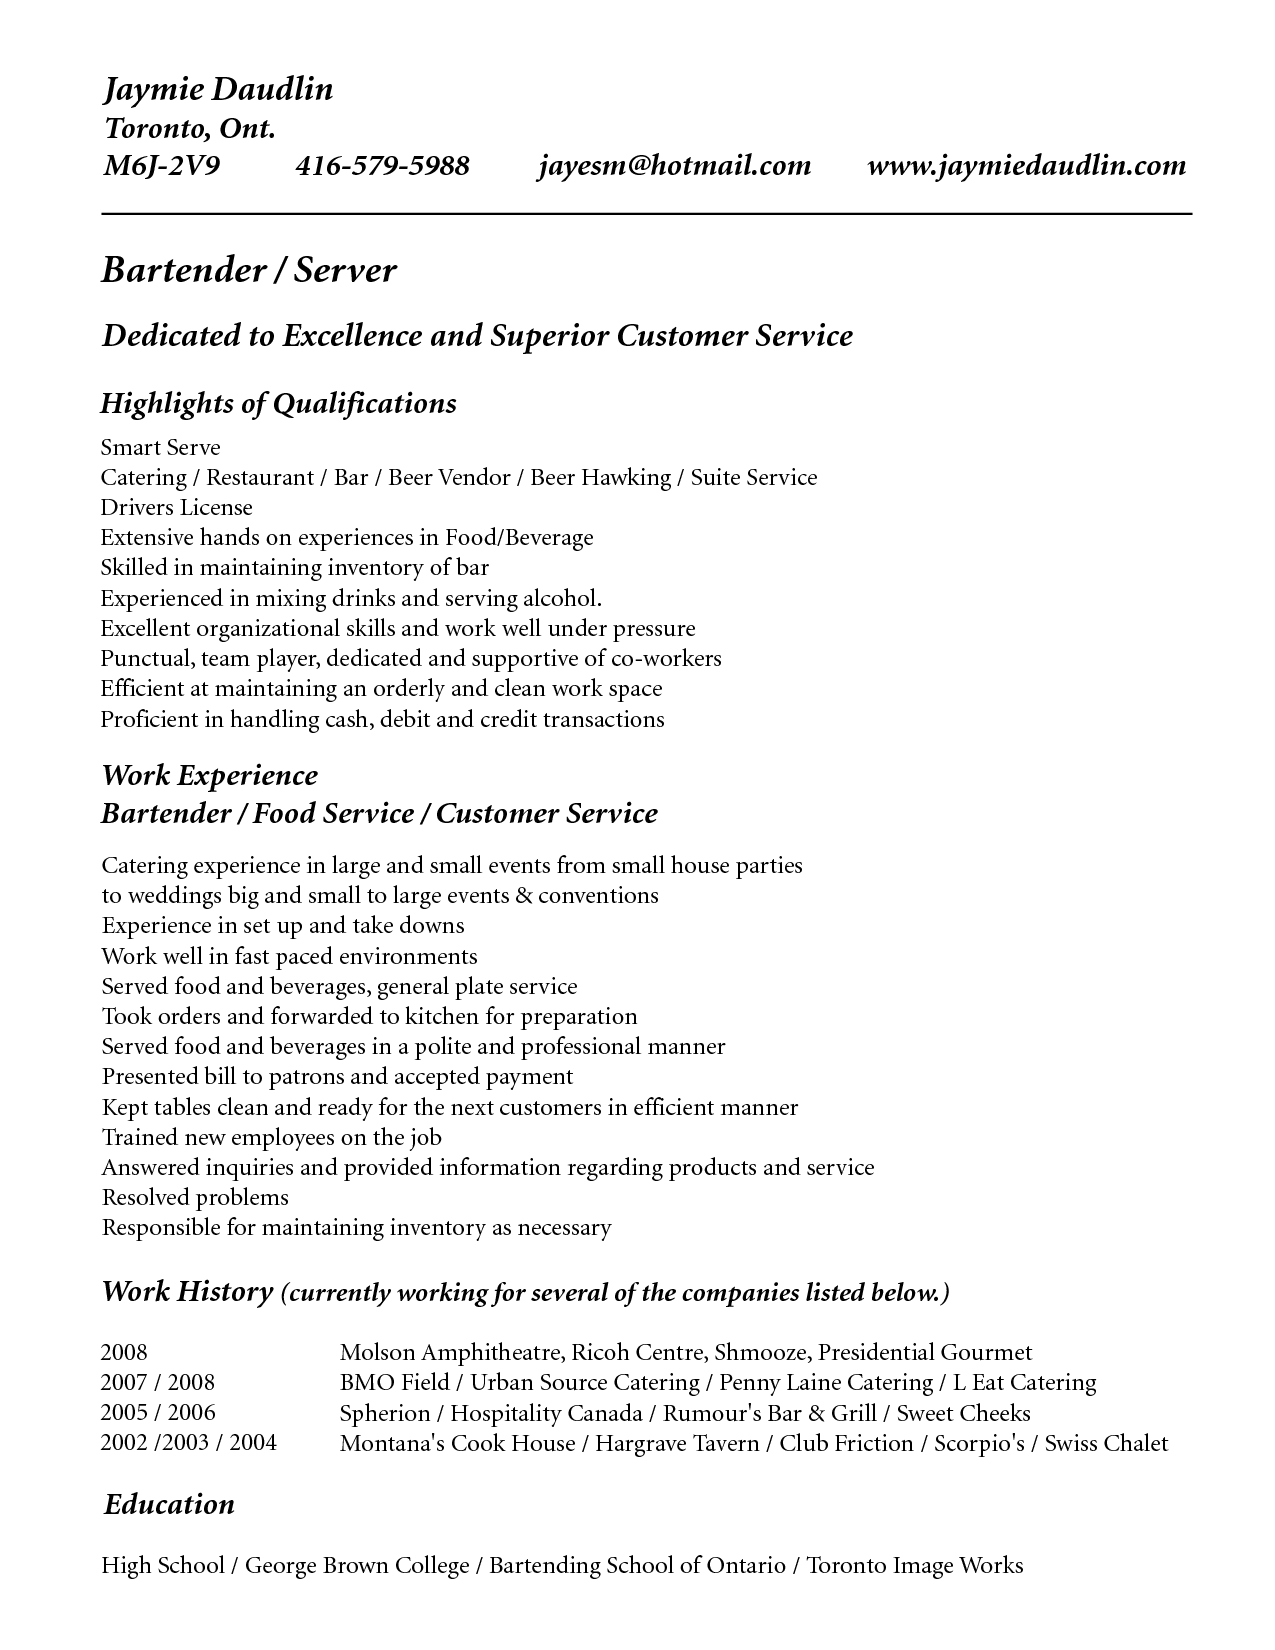 We Already Knew That We Must Put Our Educational Information To Any Resume,  Including The Bartenders Resume. When You Make Your Bartender Resume, ...  Bartender Resume Objective